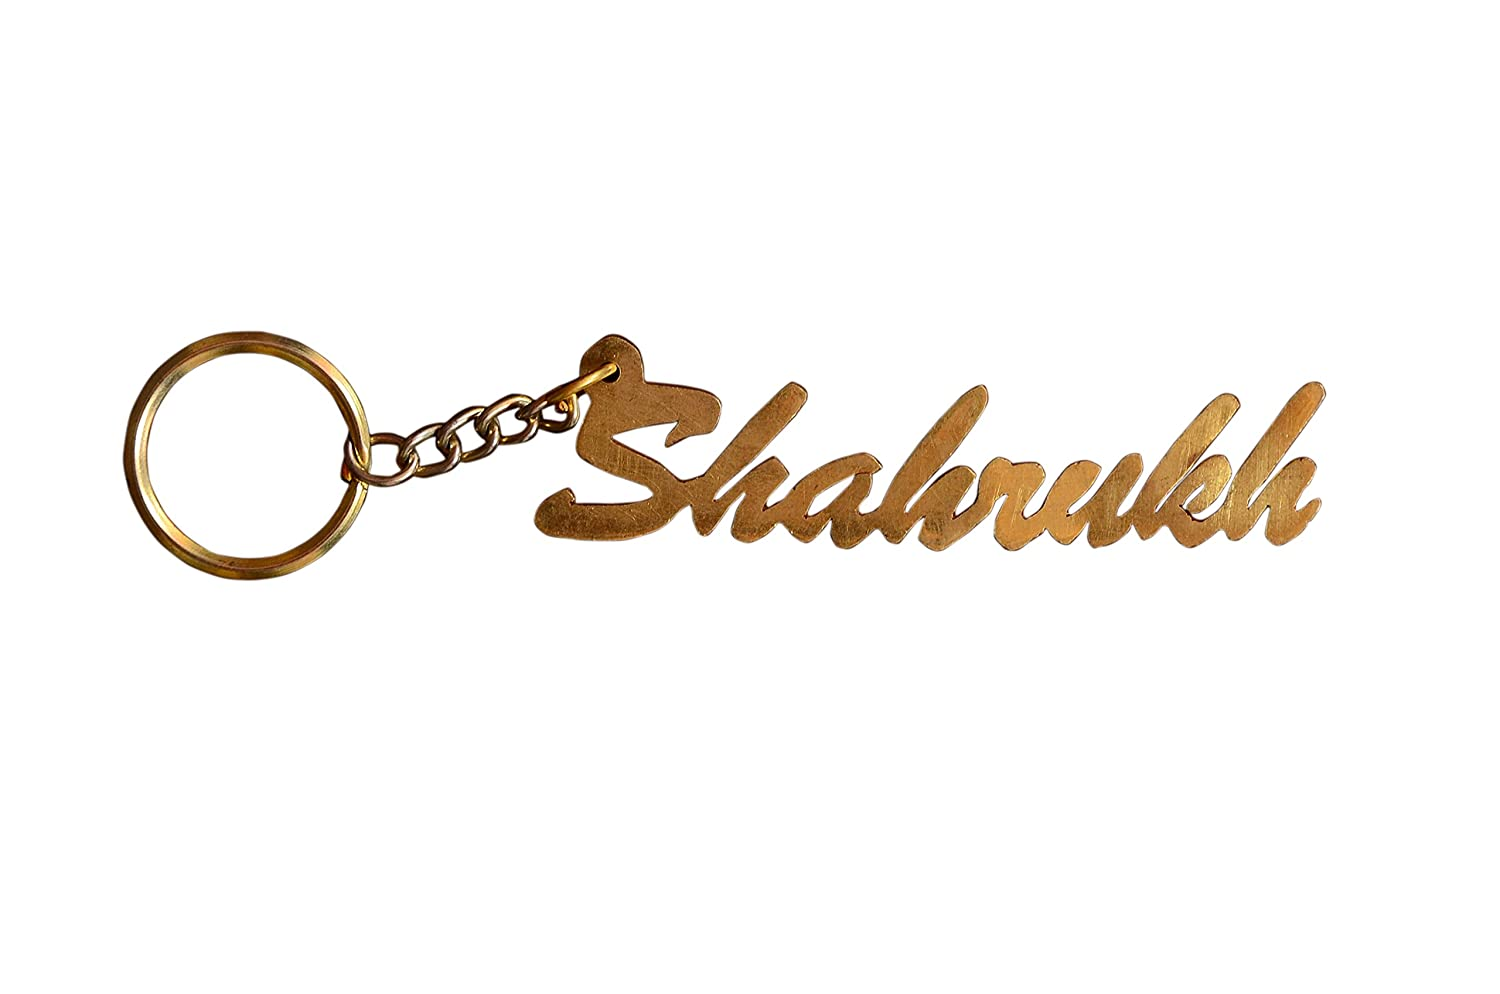 Sajal Personalized Name Brass Keychain  Amazon.in  Bags e12b7023cf